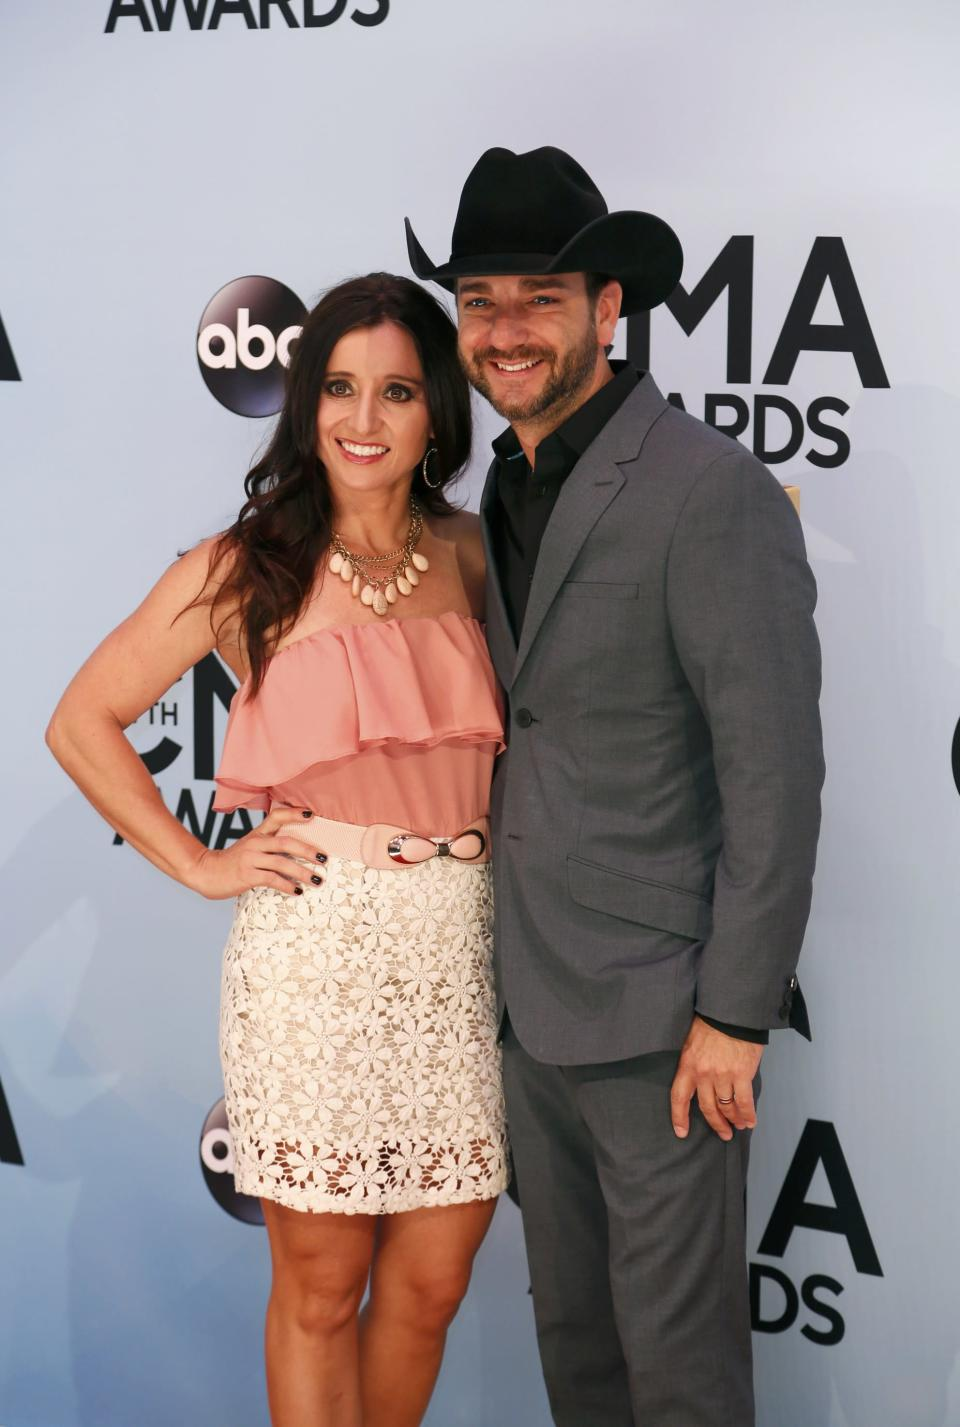 Singer Craig Campbell and his wife Mindy Ellis Campbell arrive at the 47th Country Music Association Awards in Nashville, Tennessee November 6, 2013. REUTERS/Eric Henderson (UNITED STATES - Tags: ENTERTAINMENT)